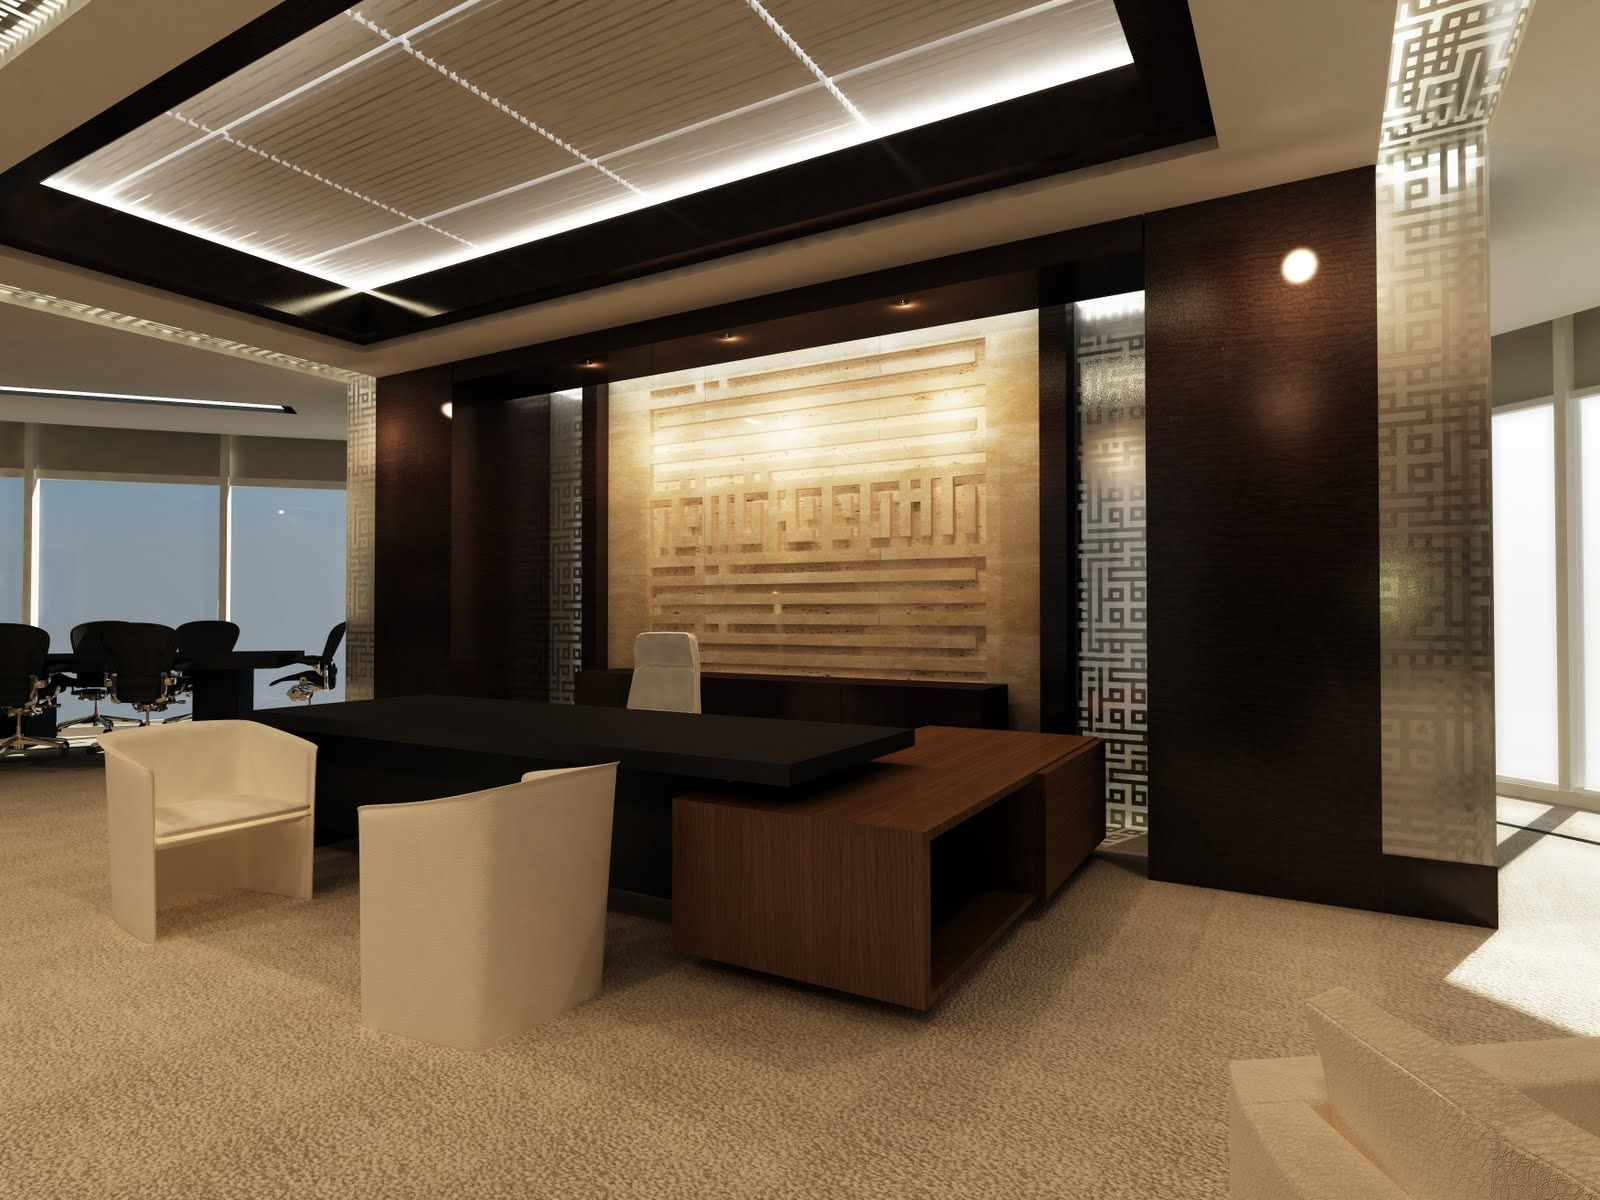 Office interior design intended for office interior design for Office interior ideas